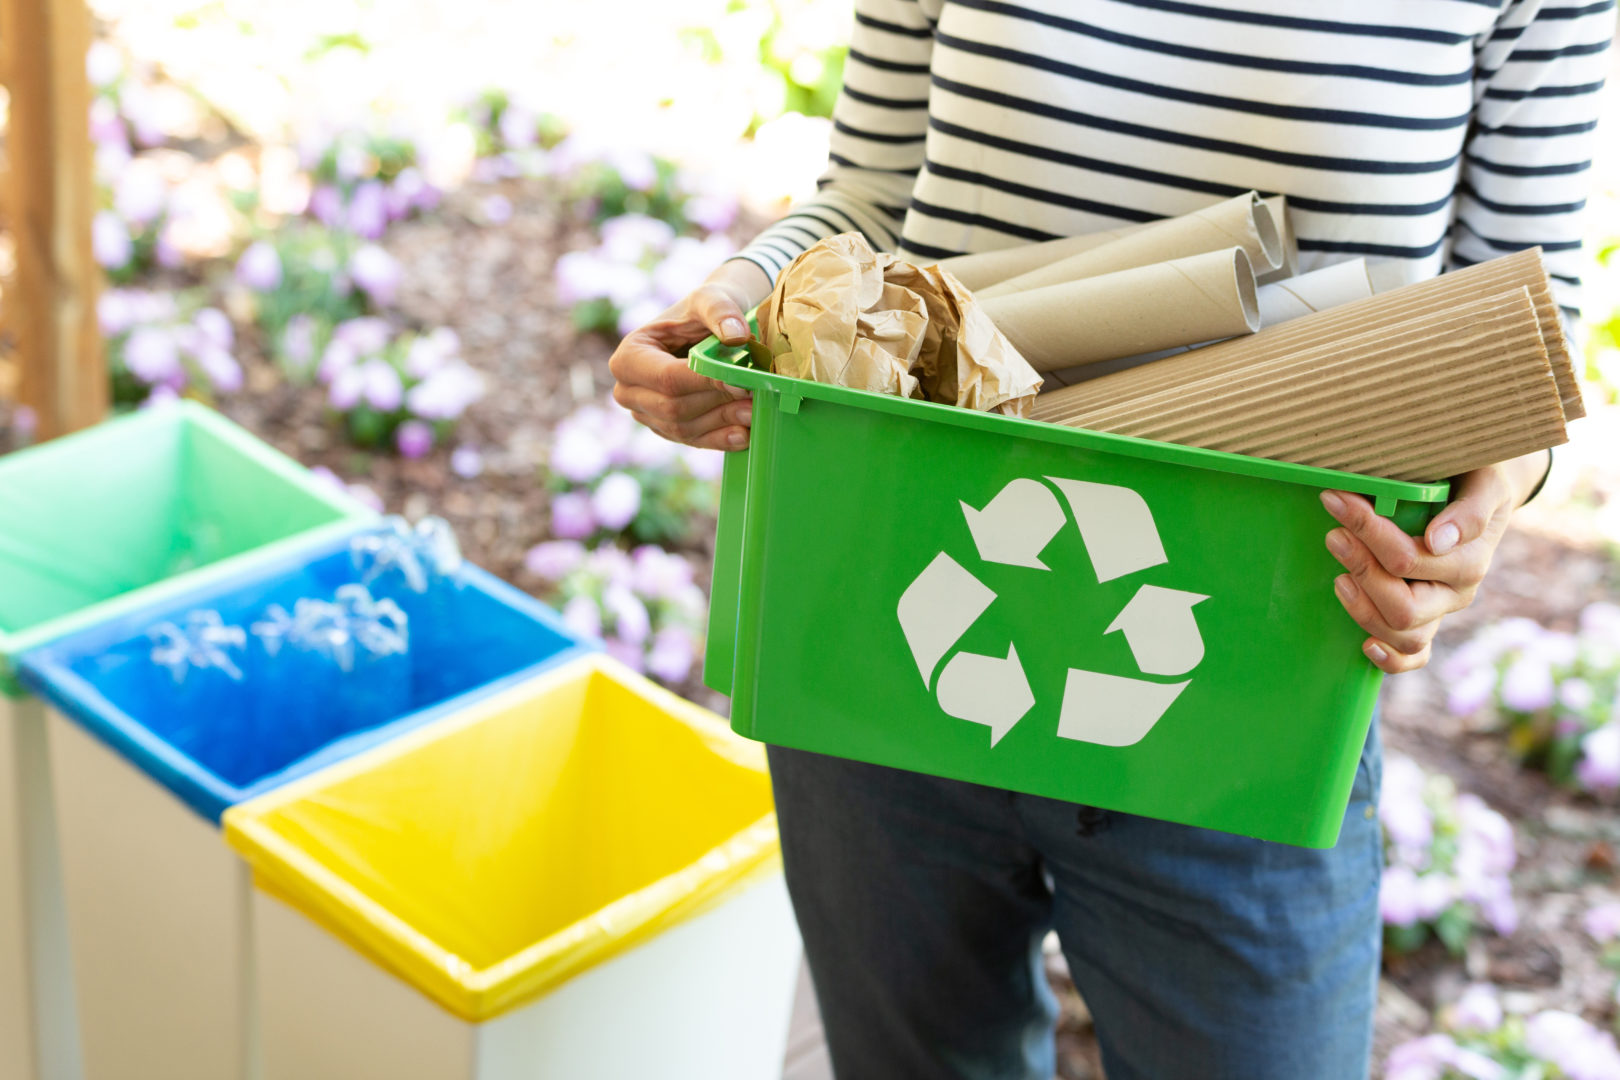 Close up of person holding green basket with recyclign symbol that has papers in it